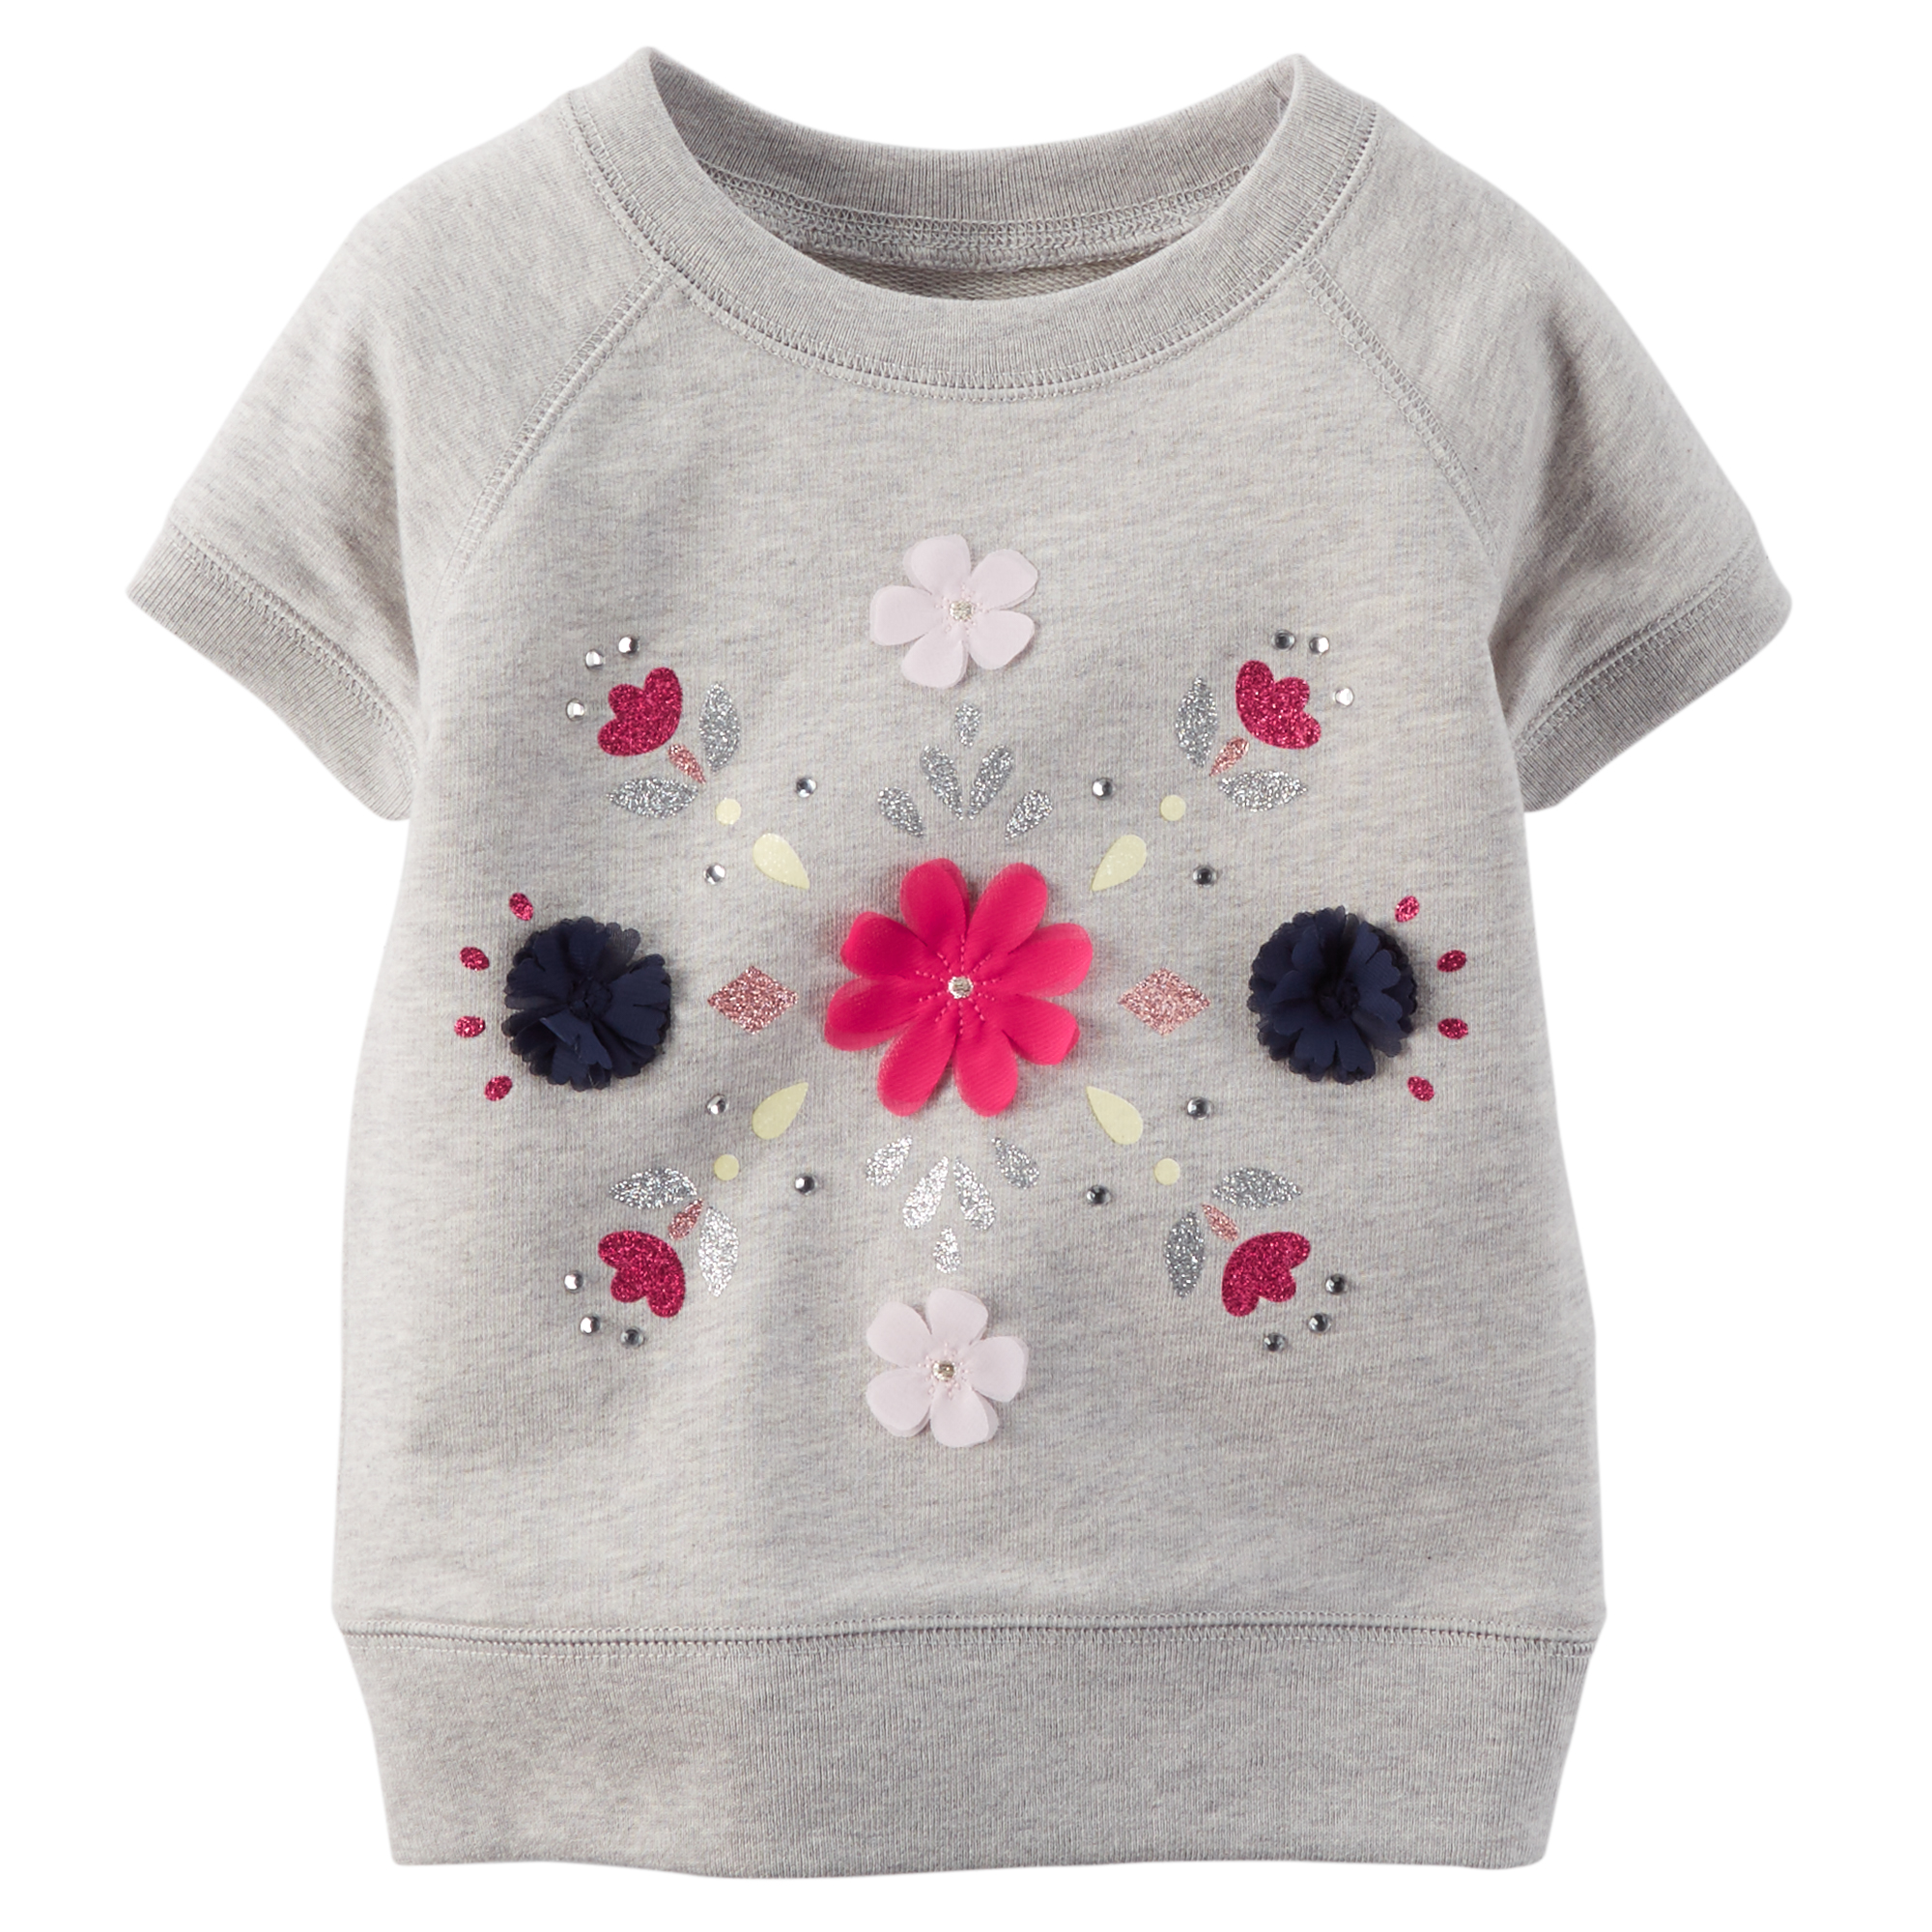 38ae5f0983fa Carter's Pink & Grey Flower Graphic T-Shirt - Girl